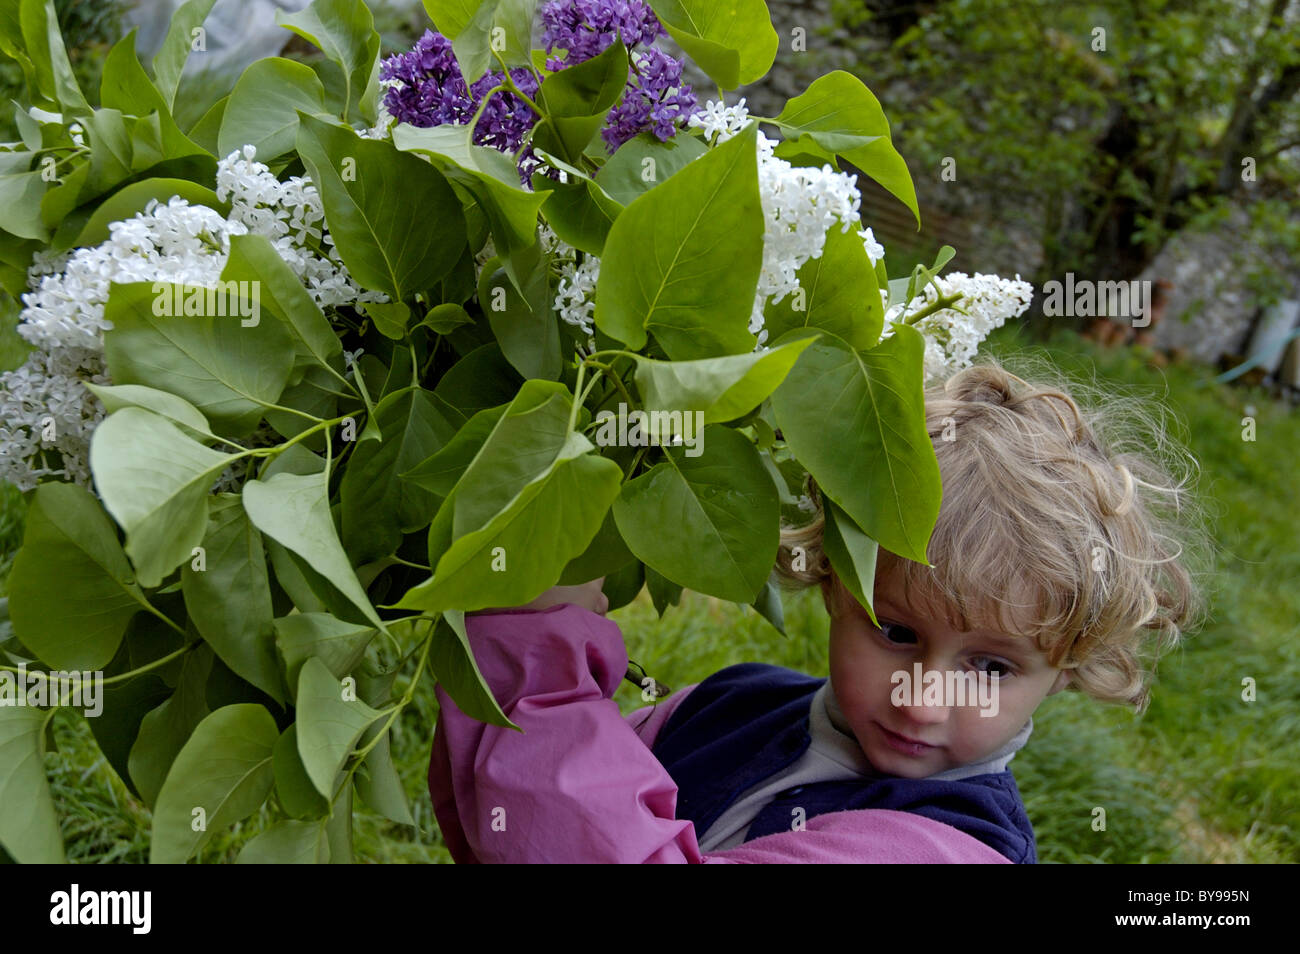 Four year old girl standing next to a lilac (Syringa) bush in the garden, France. Stock Photo